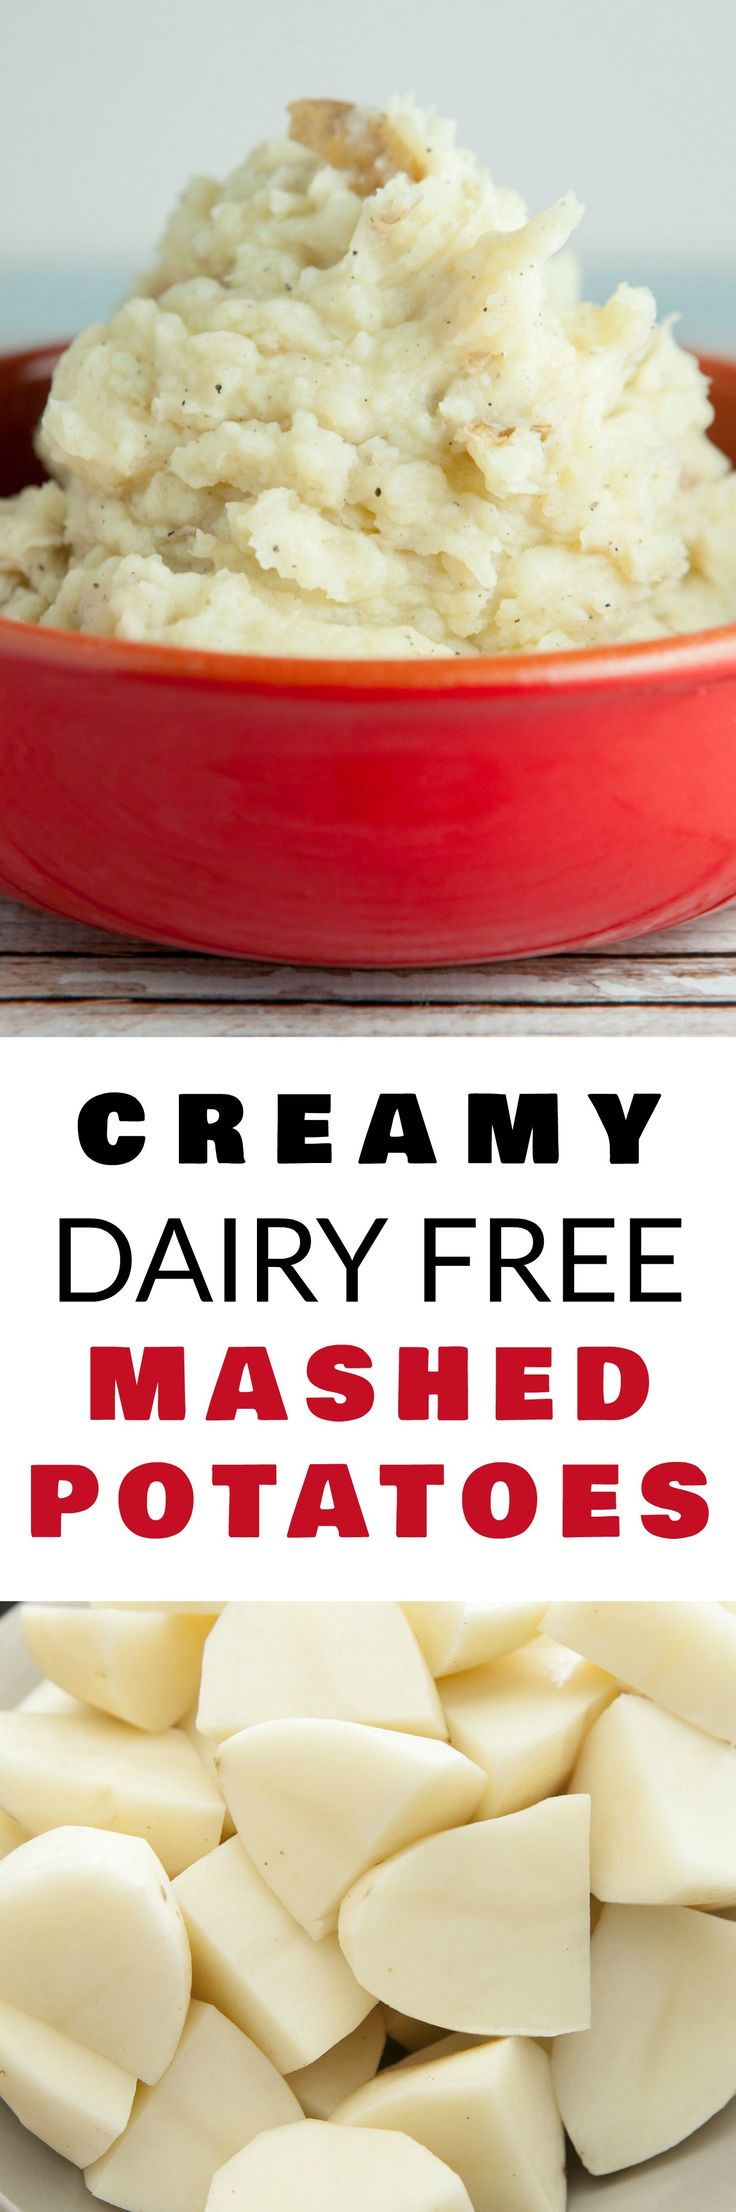 These CREAMY Garlic DAIRY FREE Mashed Potatoes are the best!  Enjoy this easy to make mashed potatoes recipe that uses broth and olive oil instead of dairy products!  Perfect for everyday dinner or Thanksgiving – you won't believe how good these are!